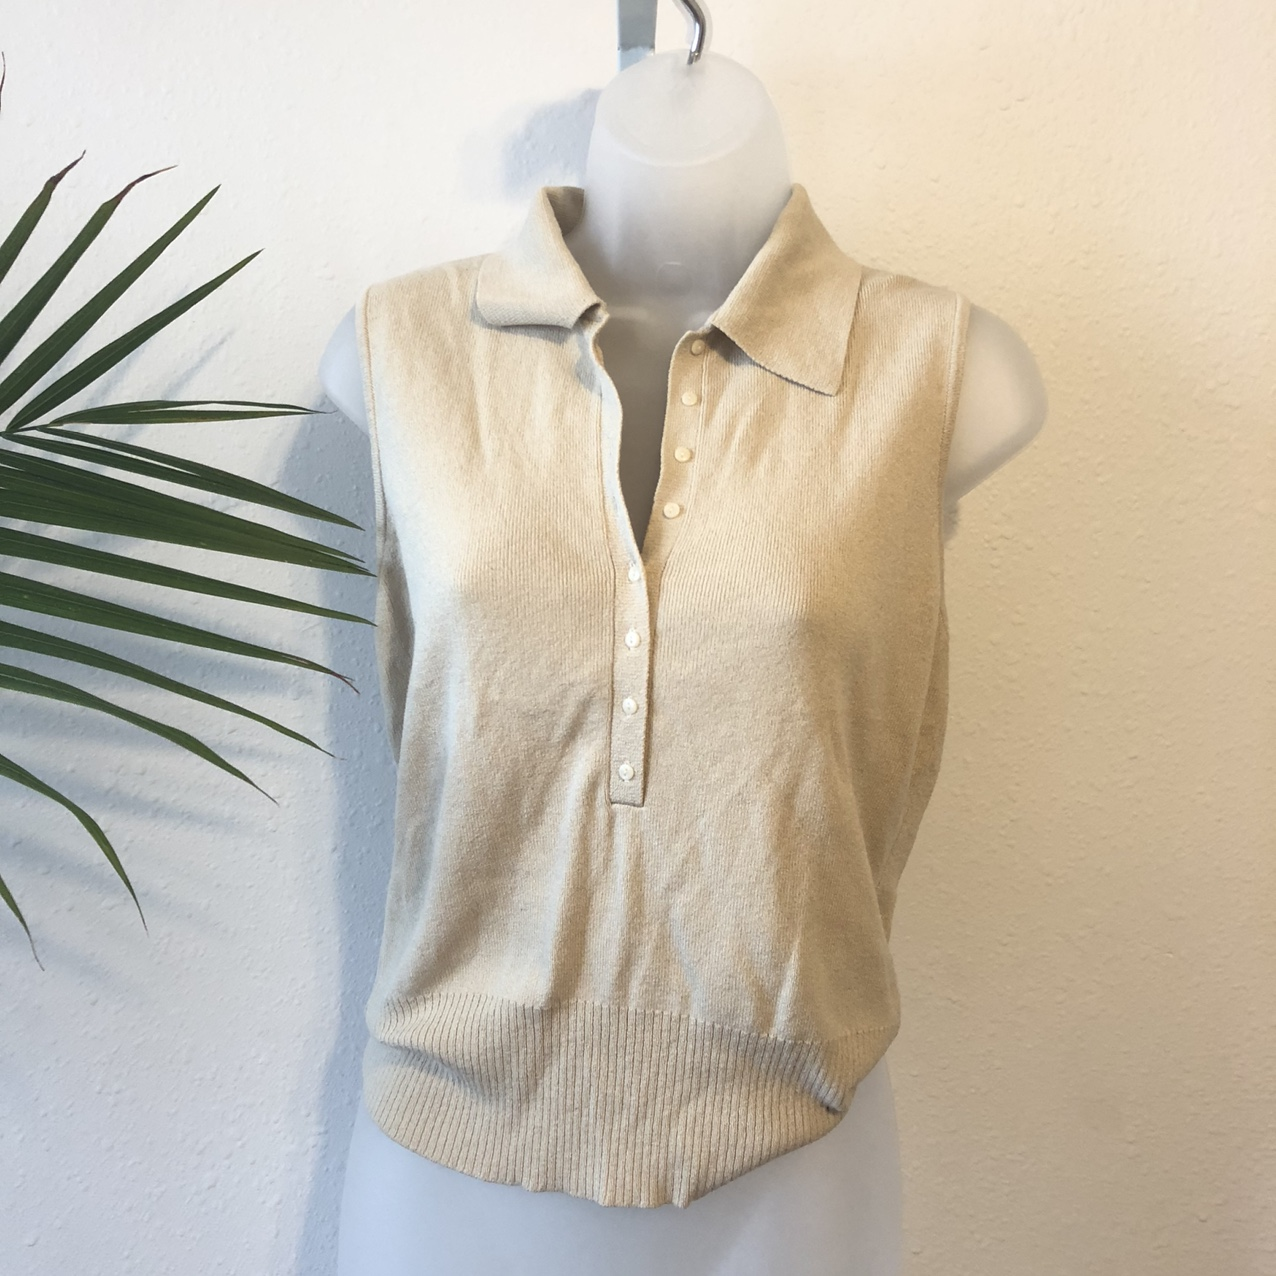 Product Image 1 - Nude Knit Sleeveless Top  Cute little